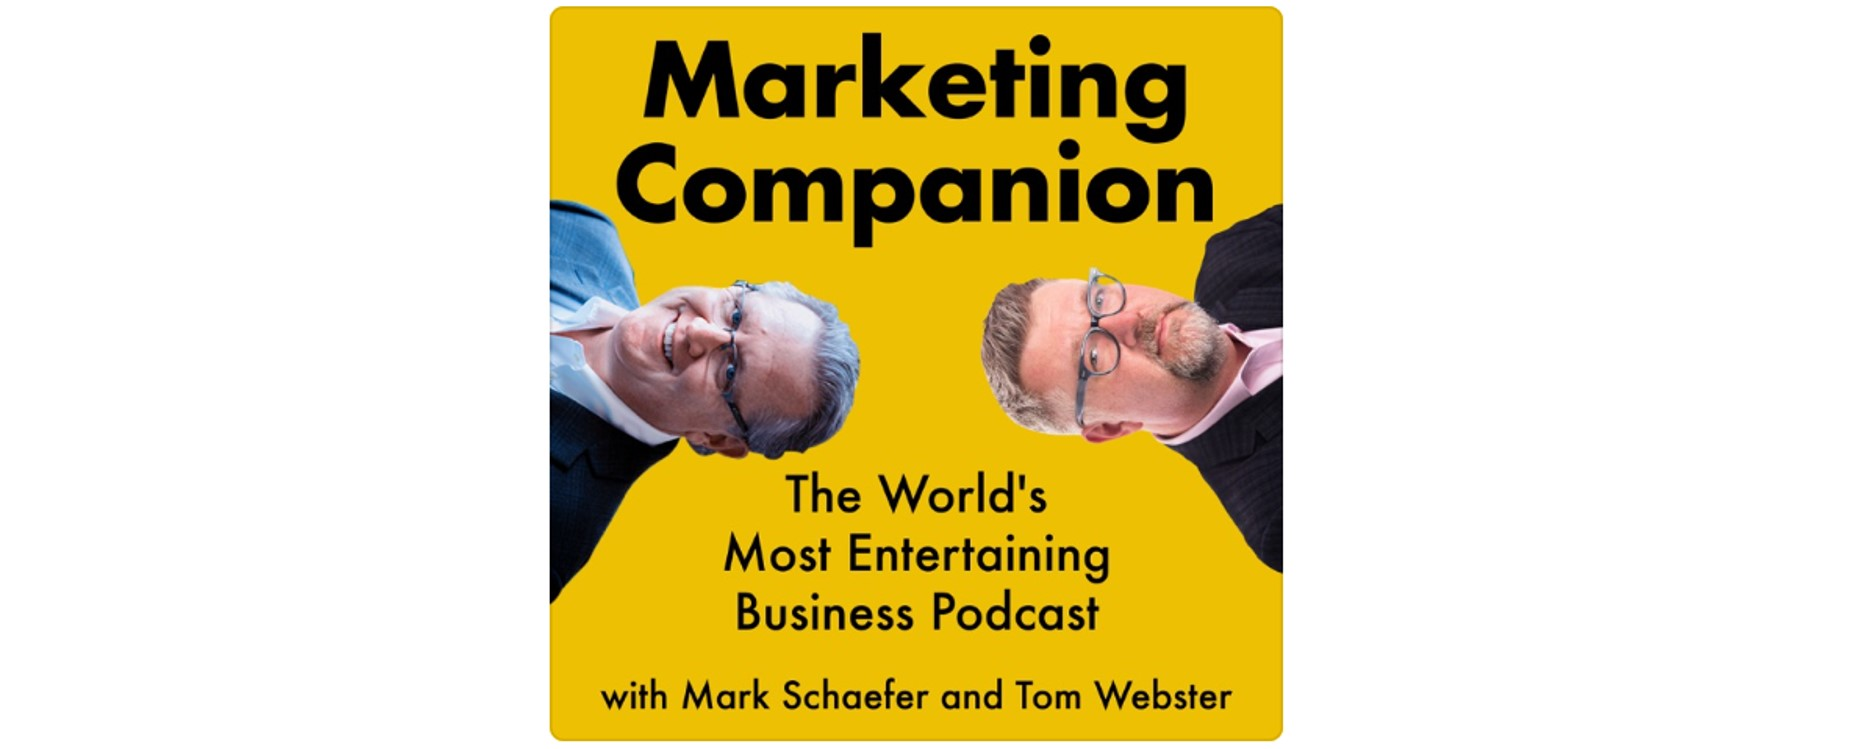 Marketing Companion podcast